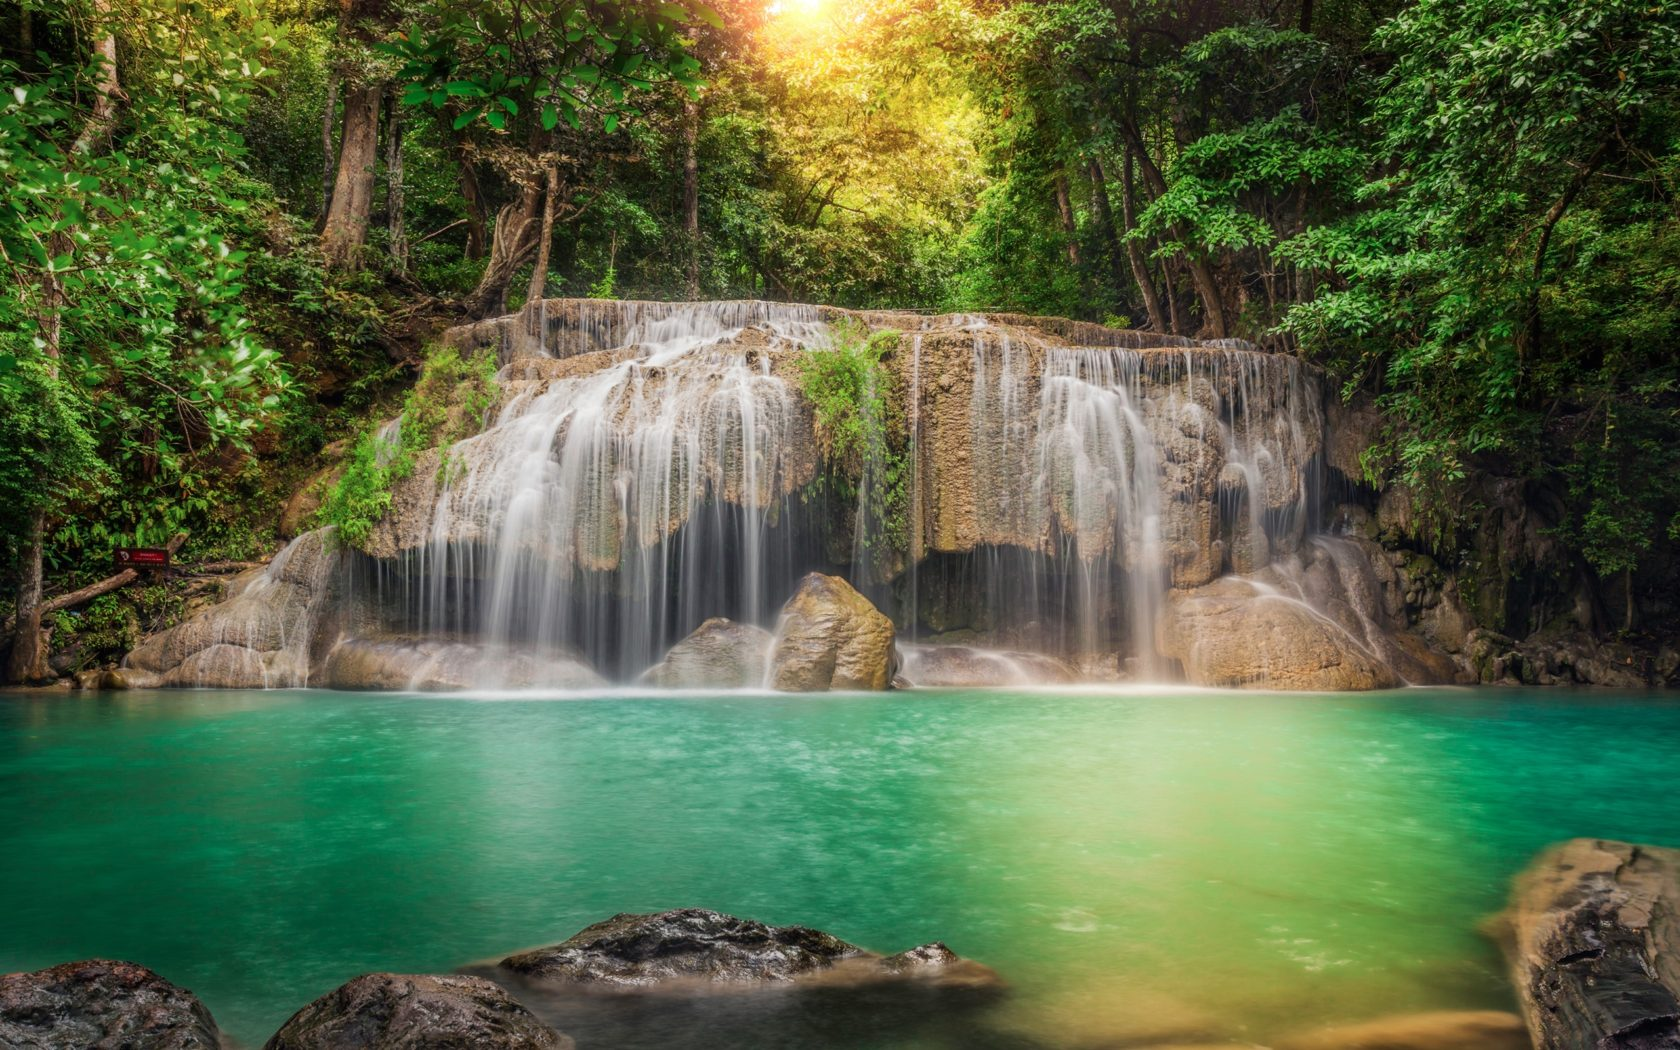 Fall Wallpaper Iphone 4 Thailand Stream Cascade Rocks Jungles Waterfalls Forest